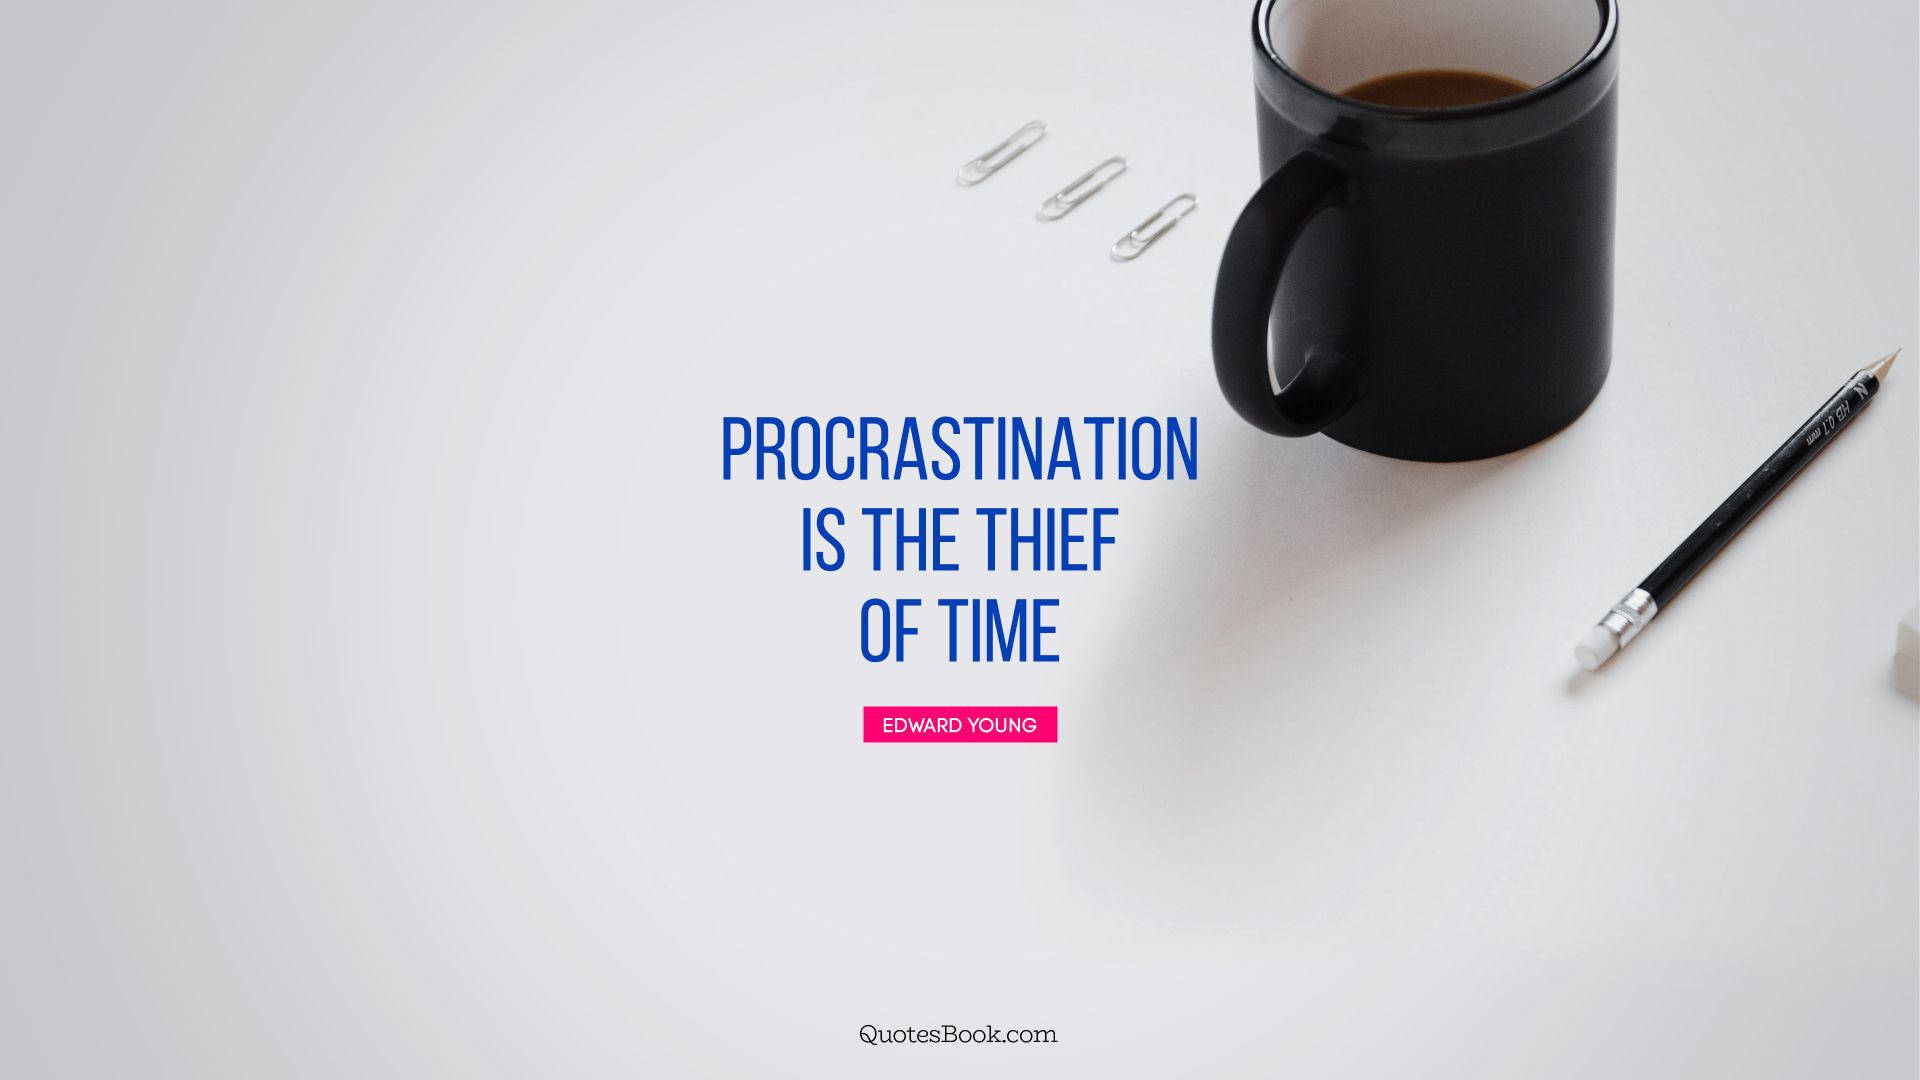 Procrastination is the thief of time. - Quote by Edward Young